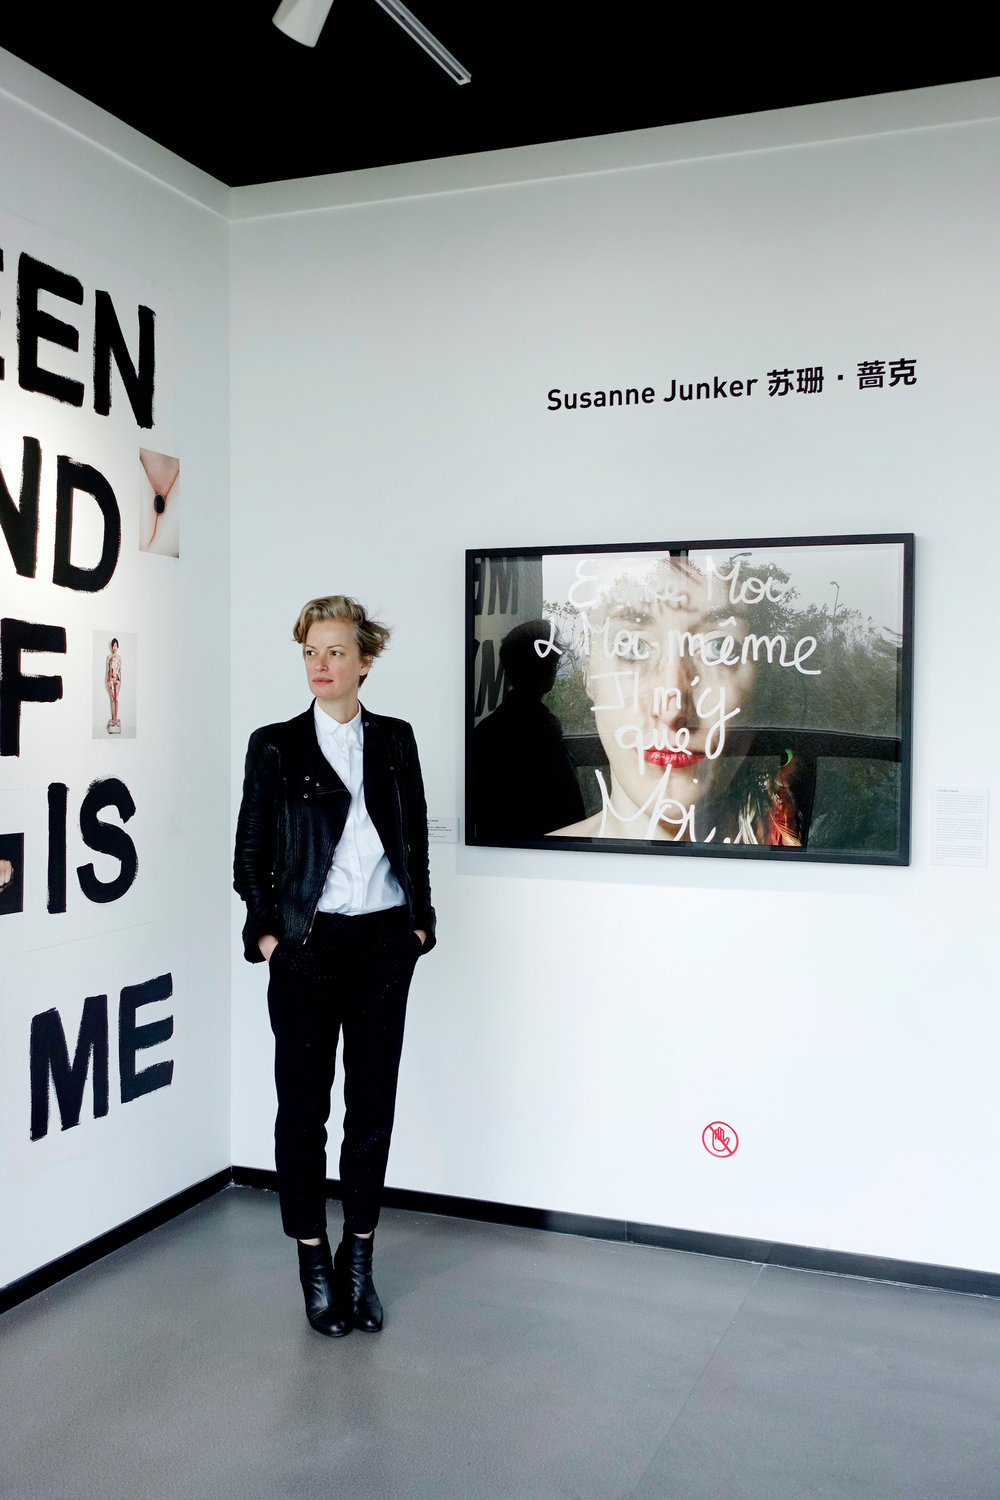 "Sofia Sept  is everywhere and also in Nanjing! Me, inside my installation for the exhibition ""On starting another conversation about comparative feminism"" at WhyWhyArt center in Nanjing/China. On view: Sofia Sept, from the series ©portrait-parole 2016, ""between me and myself there is only me"". 120 x 80 cm inkjet print on FineArt Baryta Hahnemühle paper, mounted on aluminium, framed 124 x 84 cm."